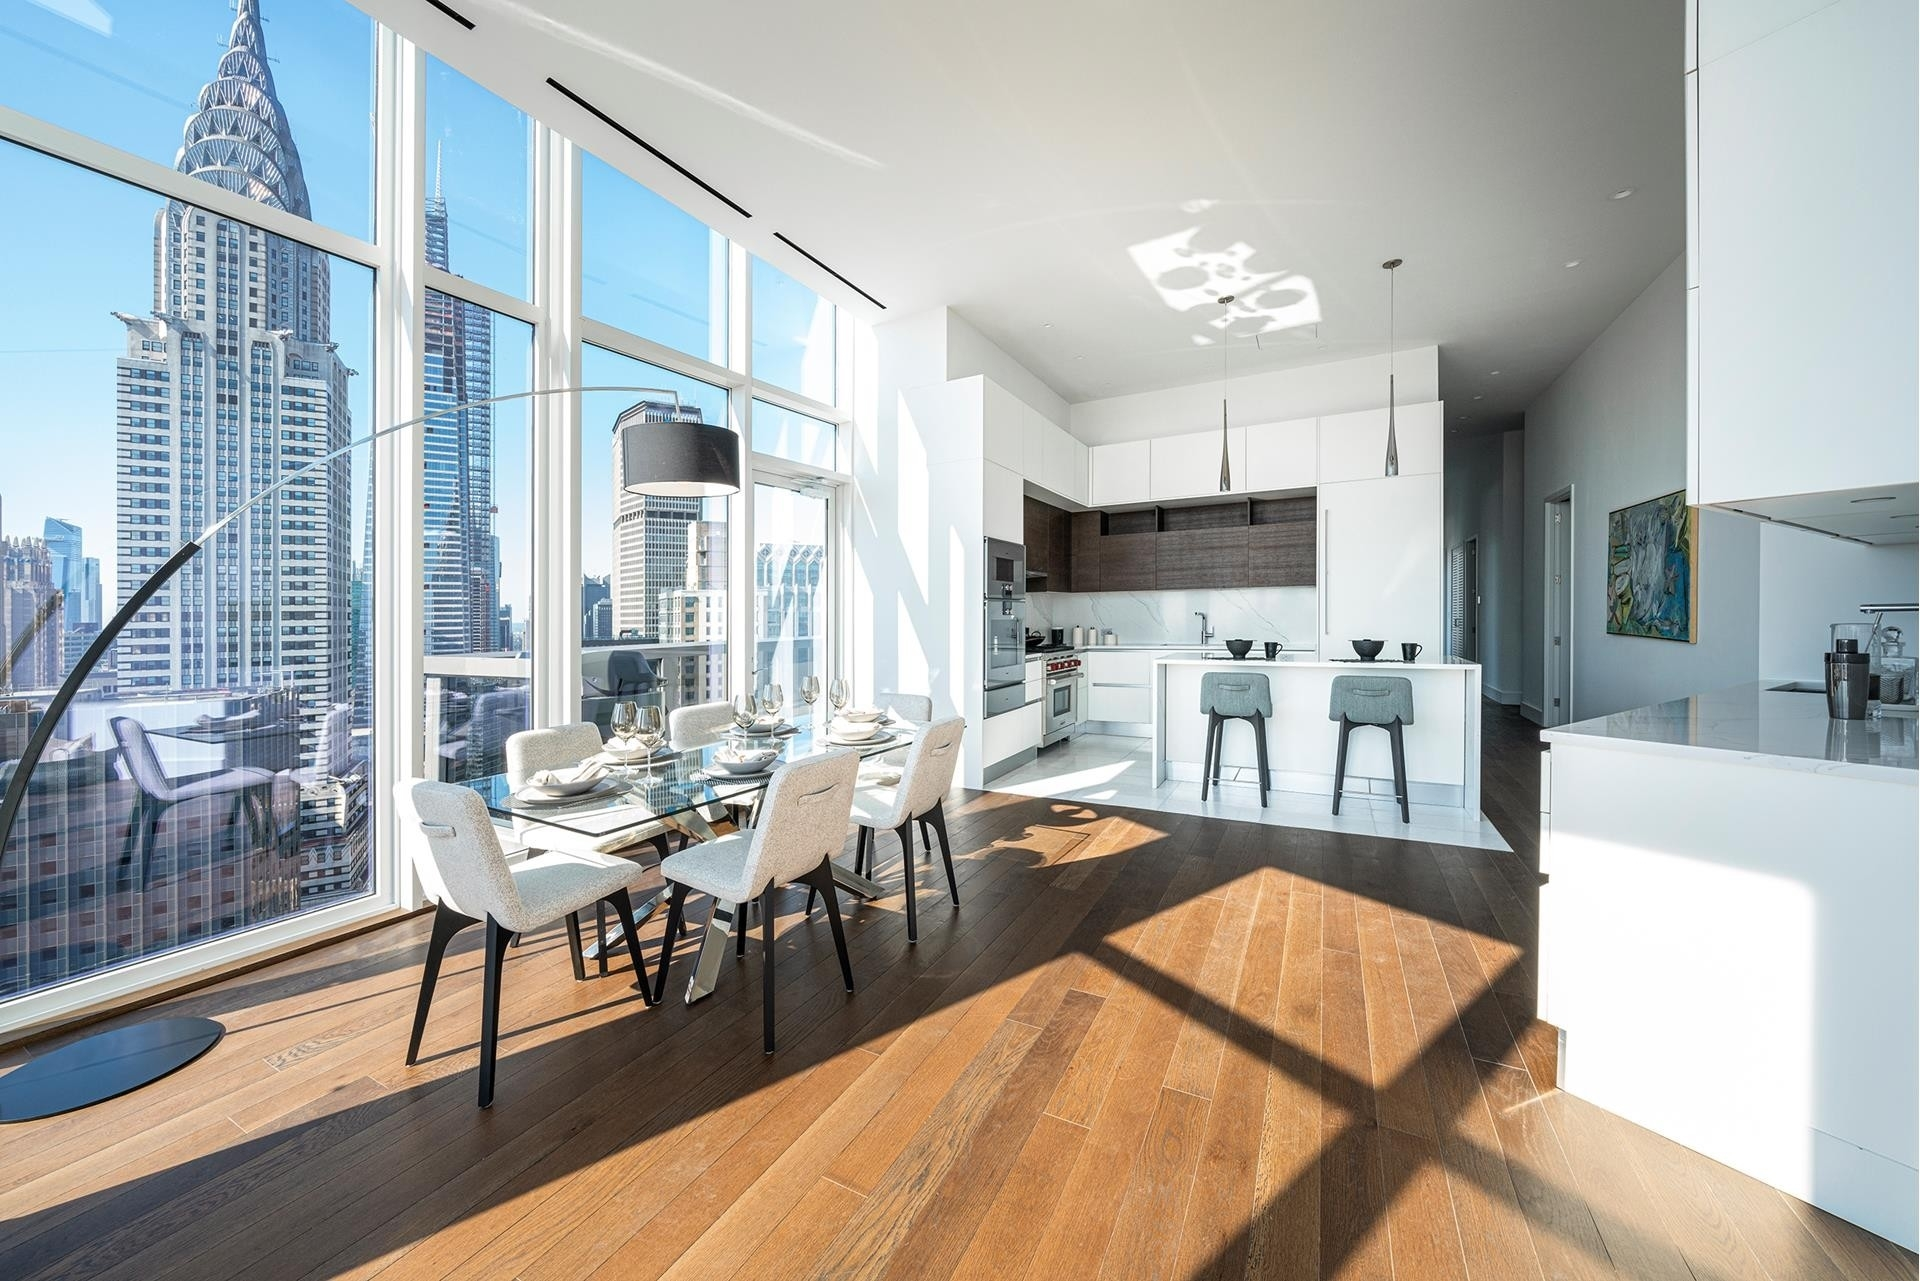 Rentals at 222 East 44th St, RESC New York